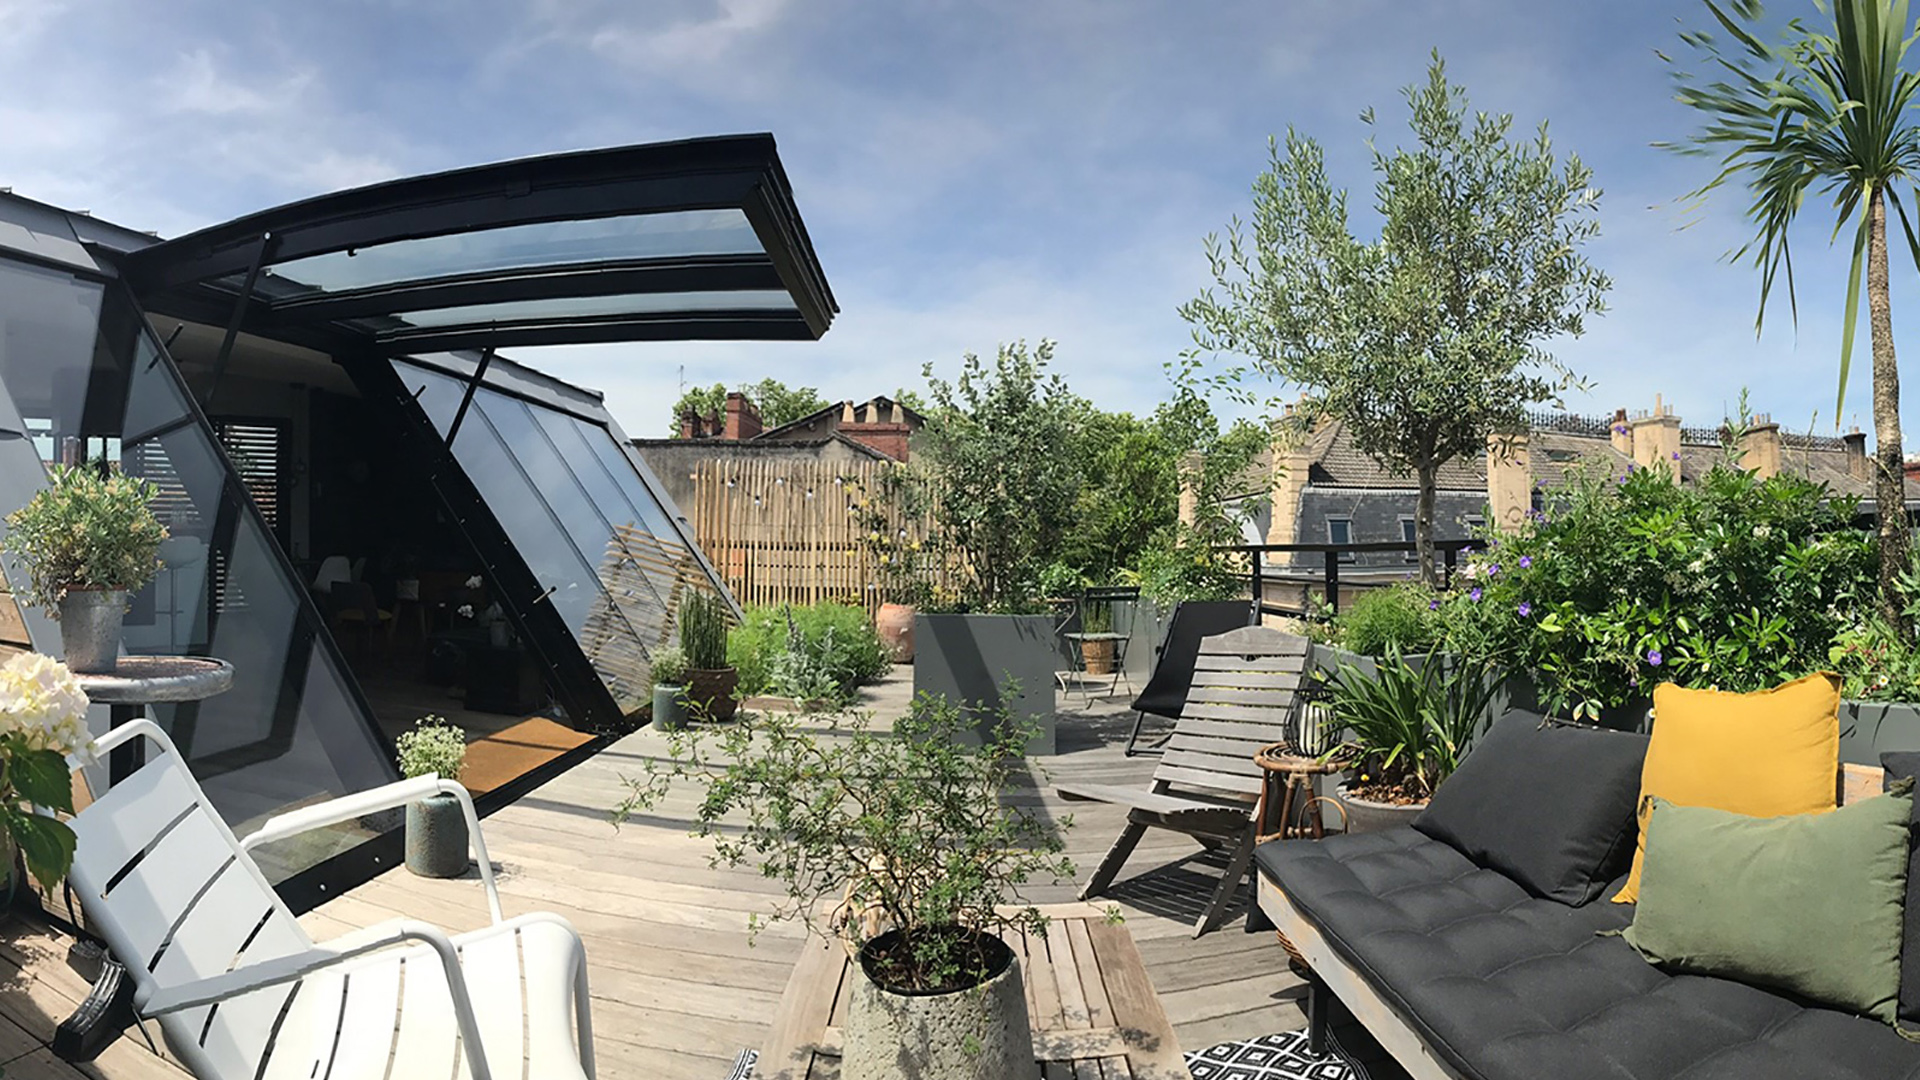 Seuil-architecture-renovation-terrasse-toulouse-1-slid